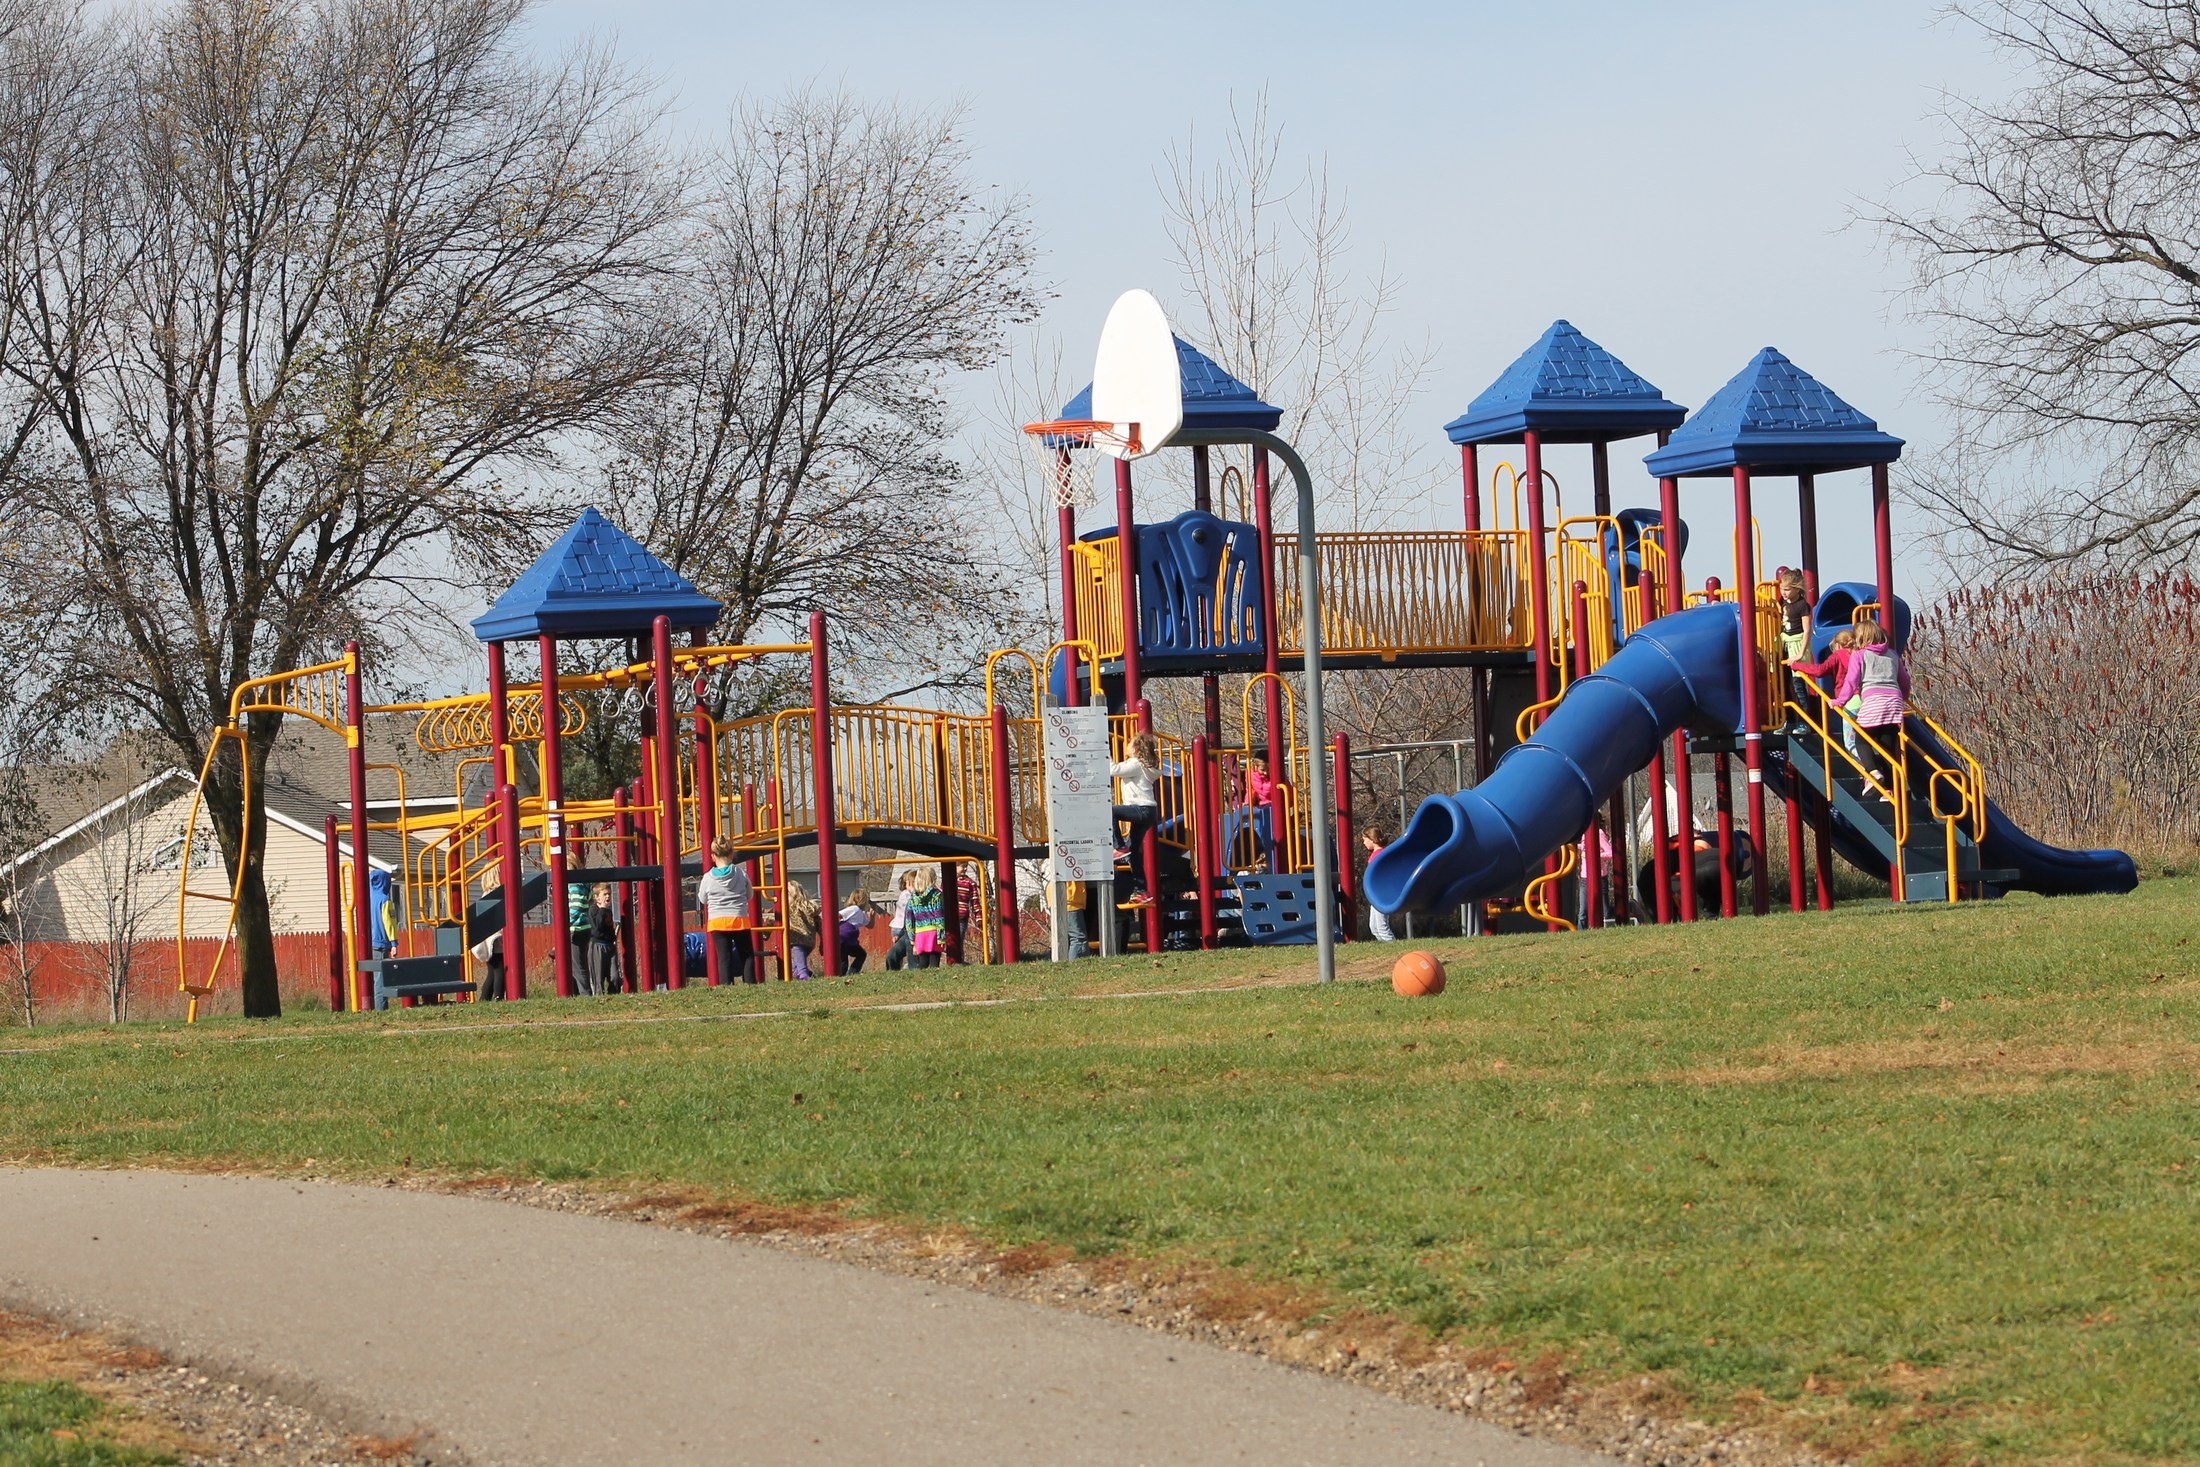 Elementary students enjoy safe and fun playground equipment.